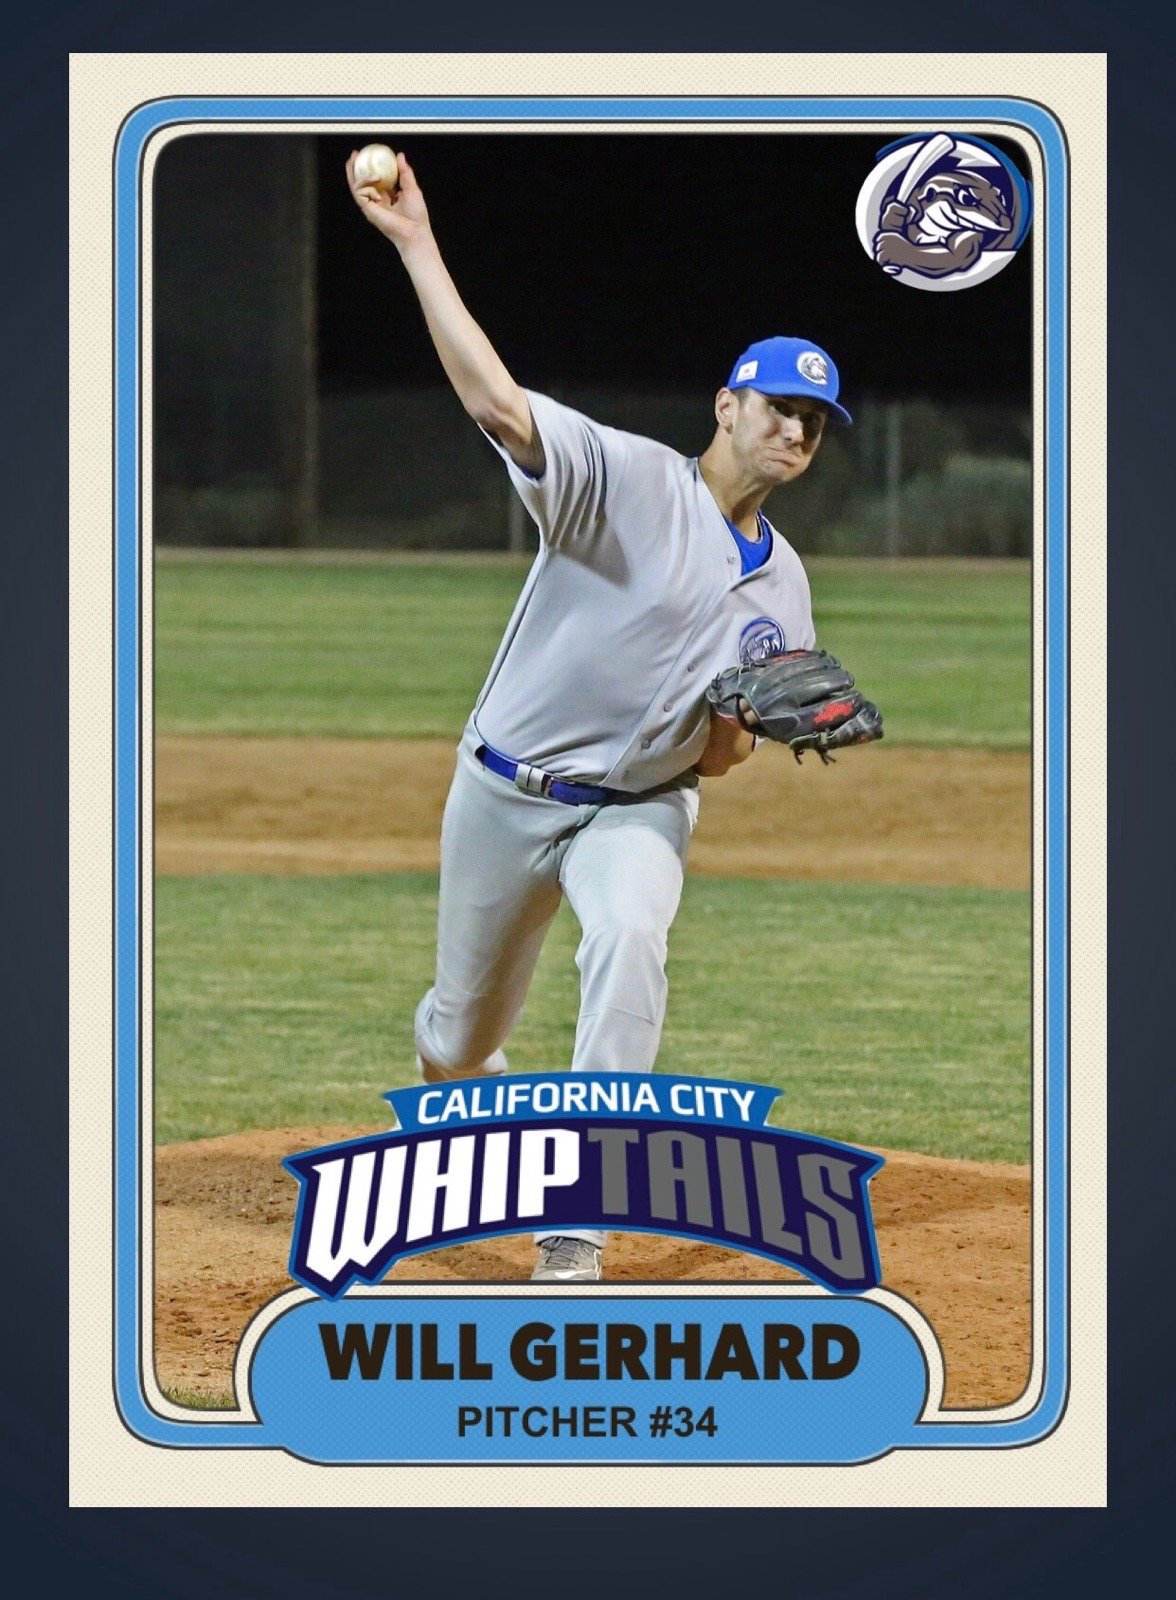 Will Gerhard baseball card.